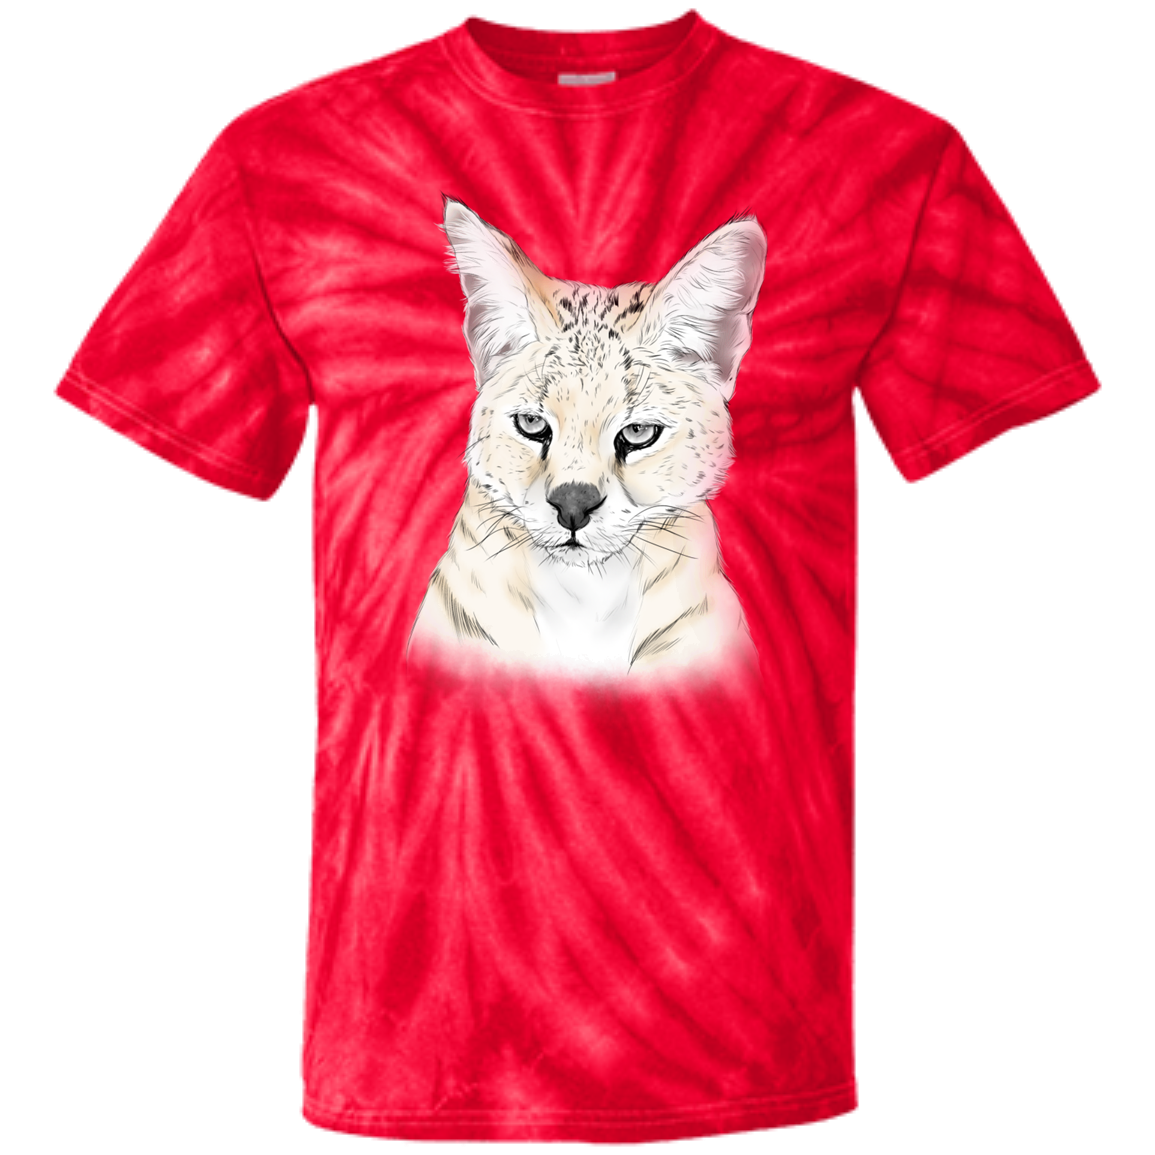 Frosty the White Serval Color CD100Y Youth Tie Dye TShirt